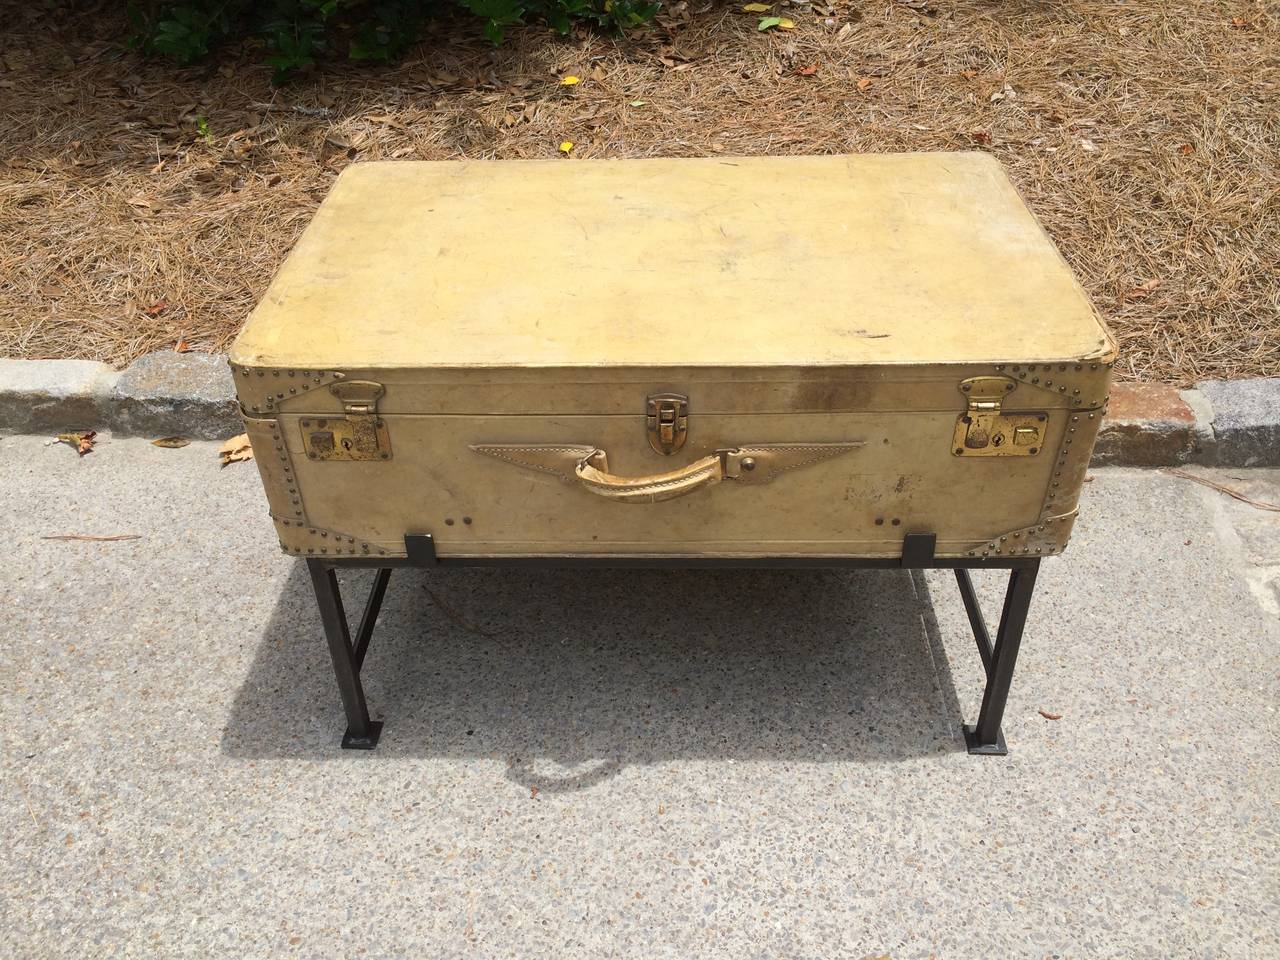 Vintage Vellum Suitcase Coffee Table